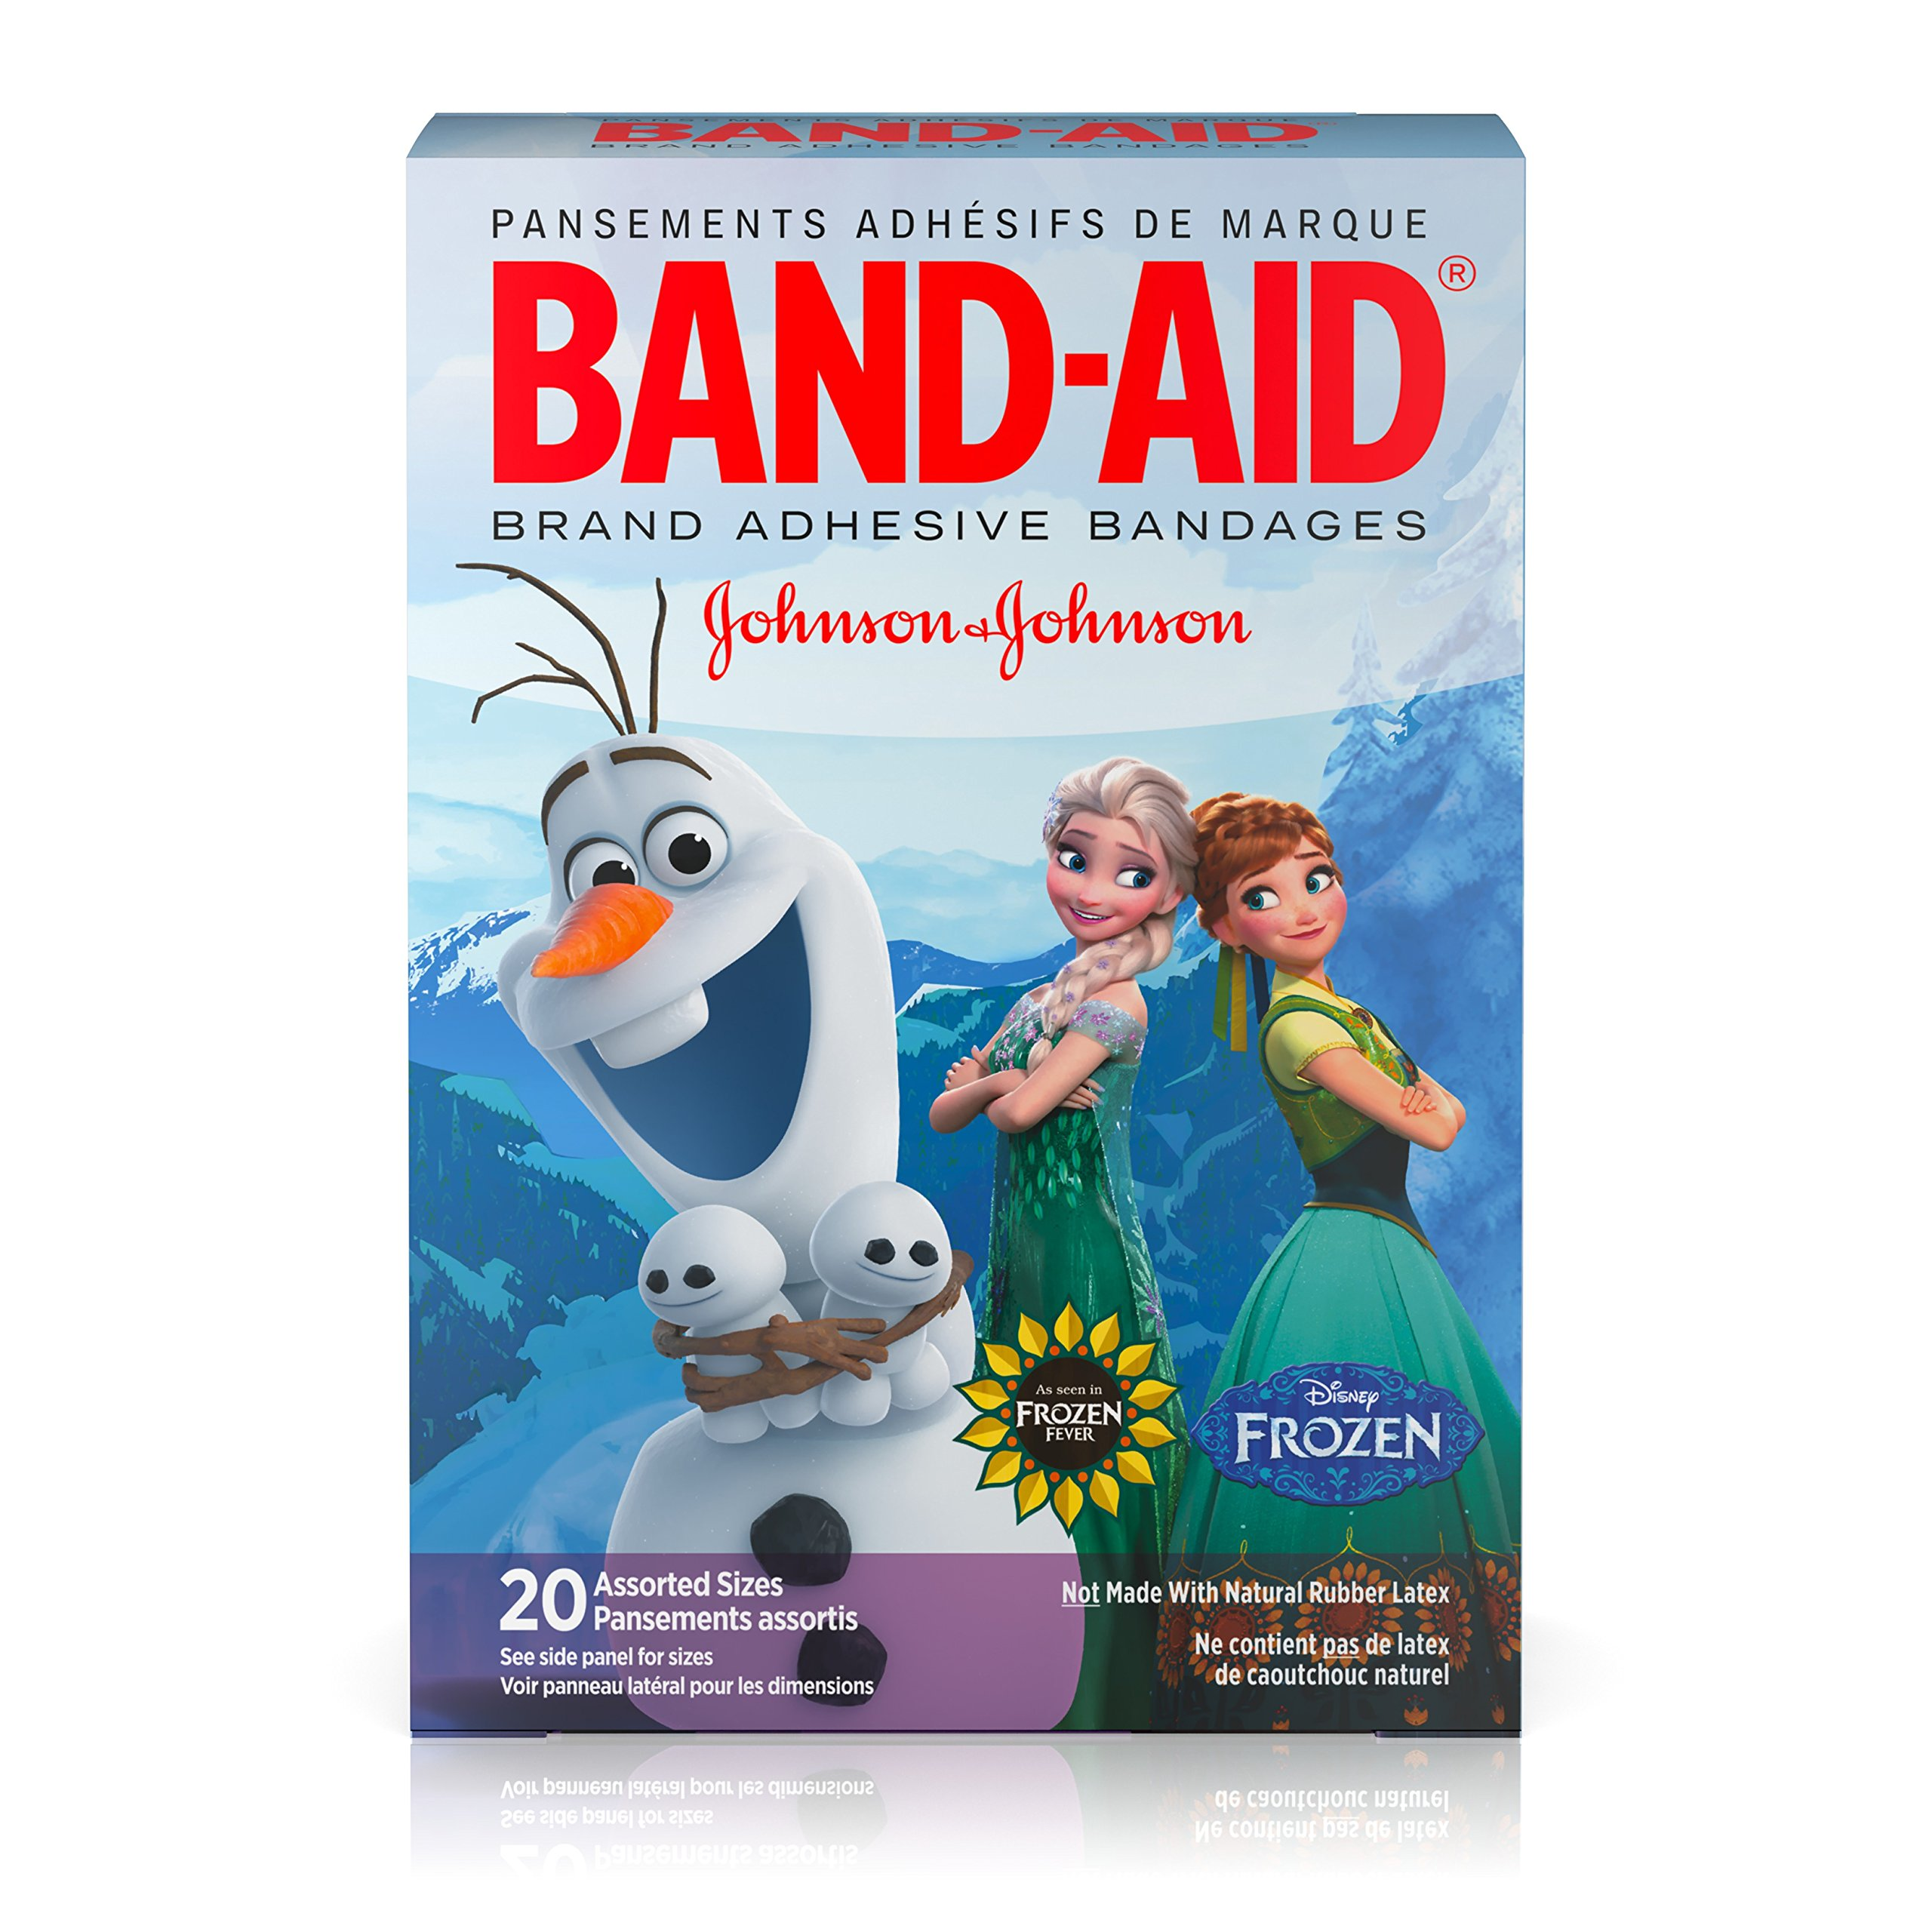 Band-Aid Brand Kids Disney Frozen Adhesive Bandages for Minor Cuts & Scrapes 20 Count Assorted Sizes, Pack of 6